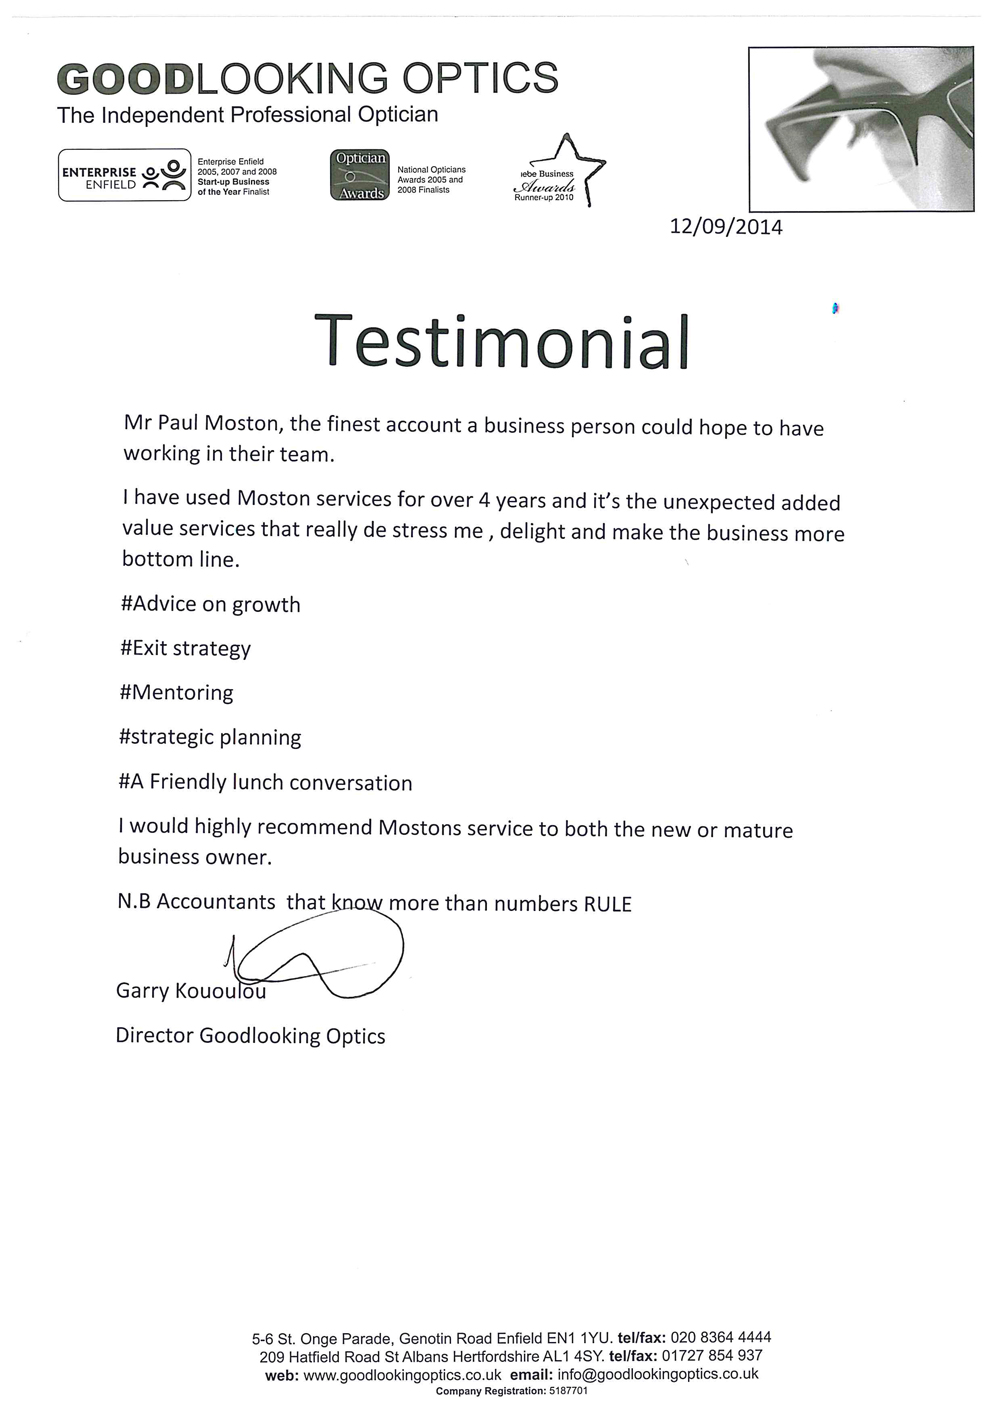 Goodlooking-optics-testimonial